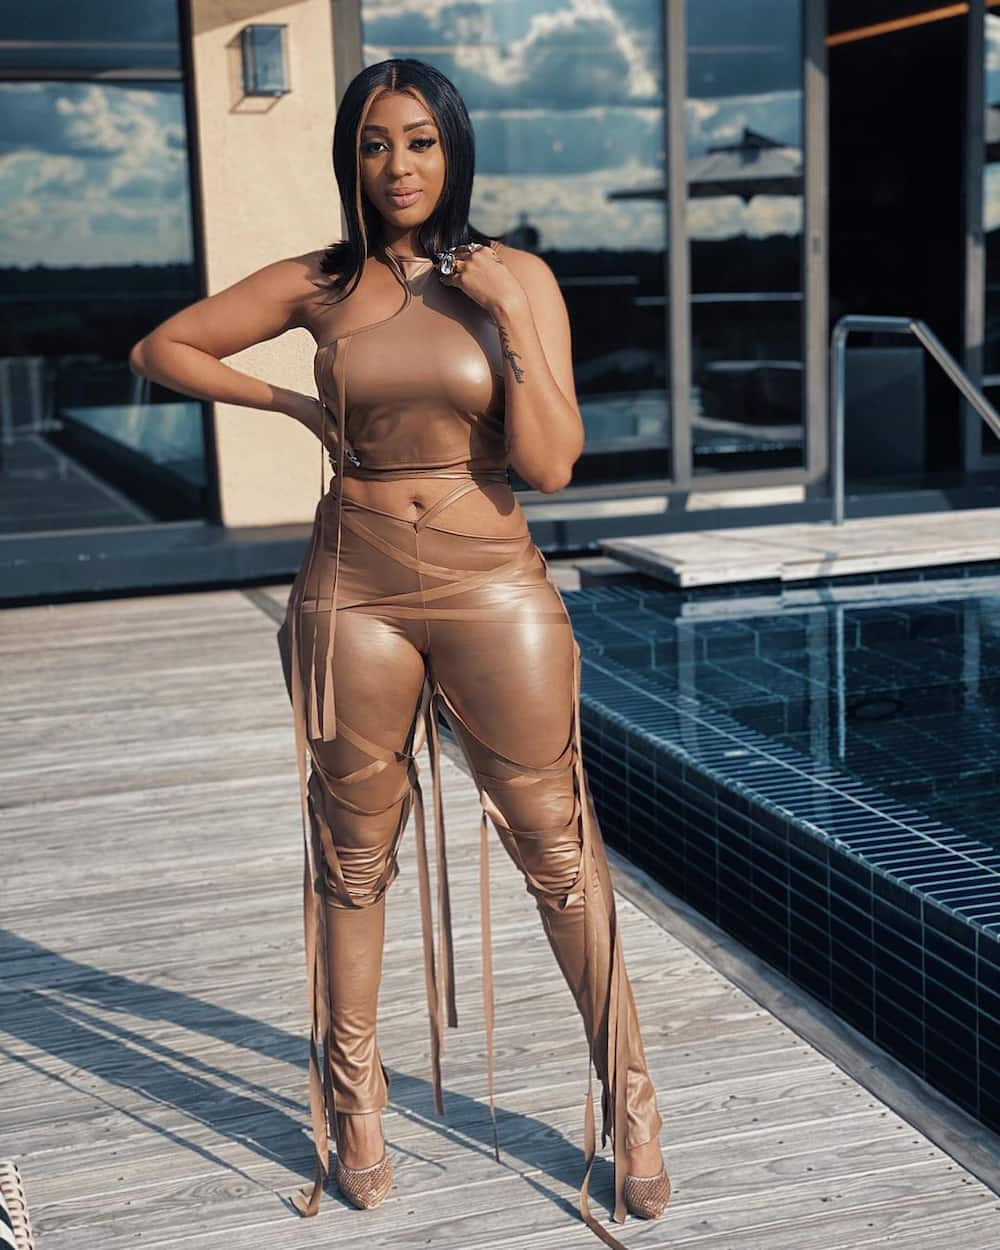 Curvy South African celebrities